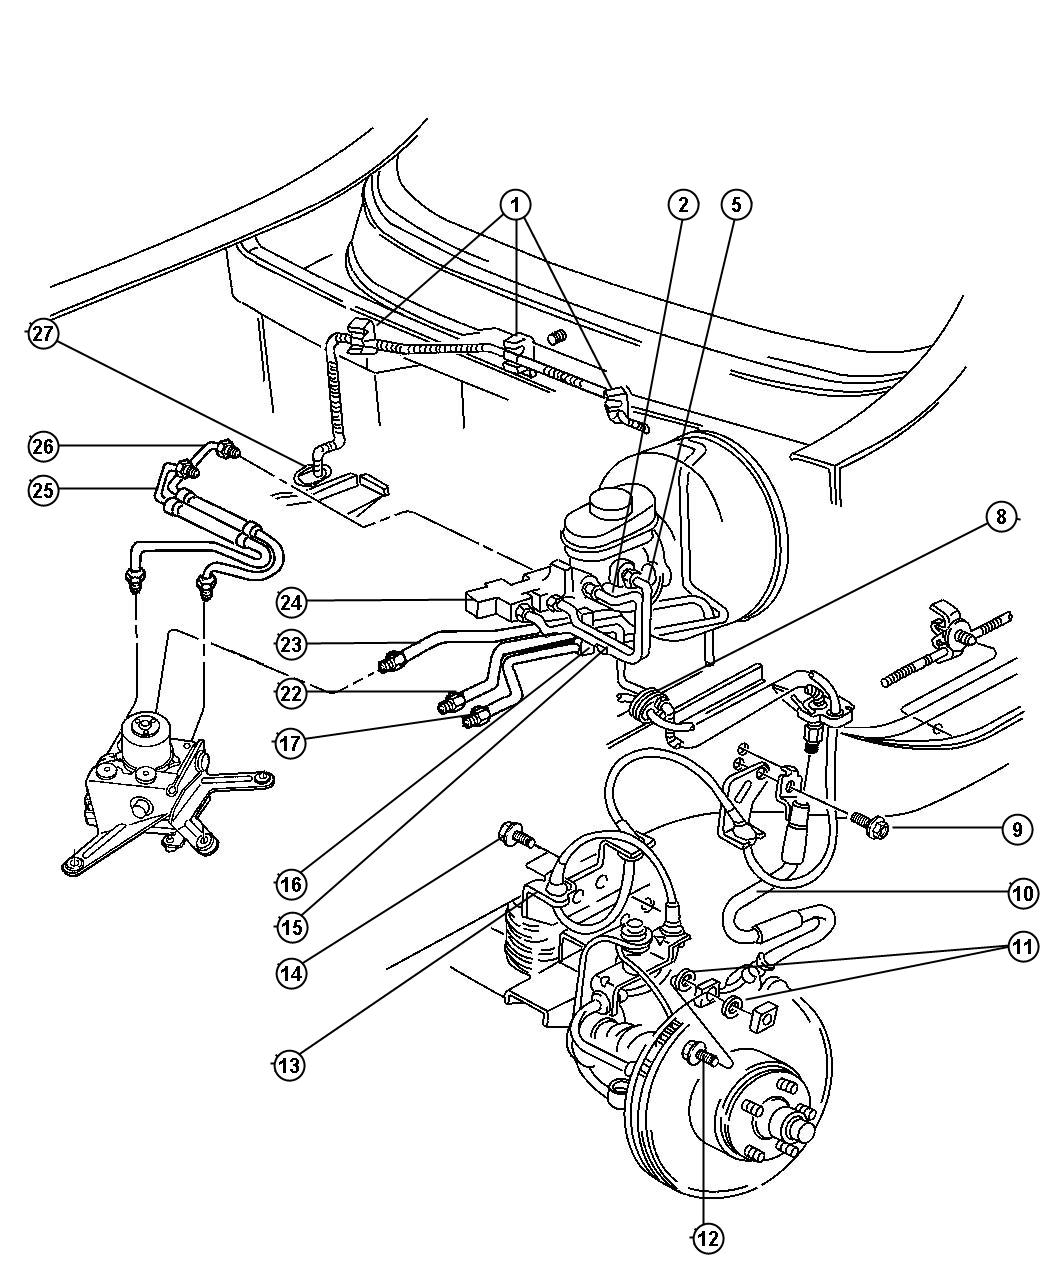 Jeep Cherokee Replacement Brake Lines : Chrysler parts diagrams auto wiring diagram